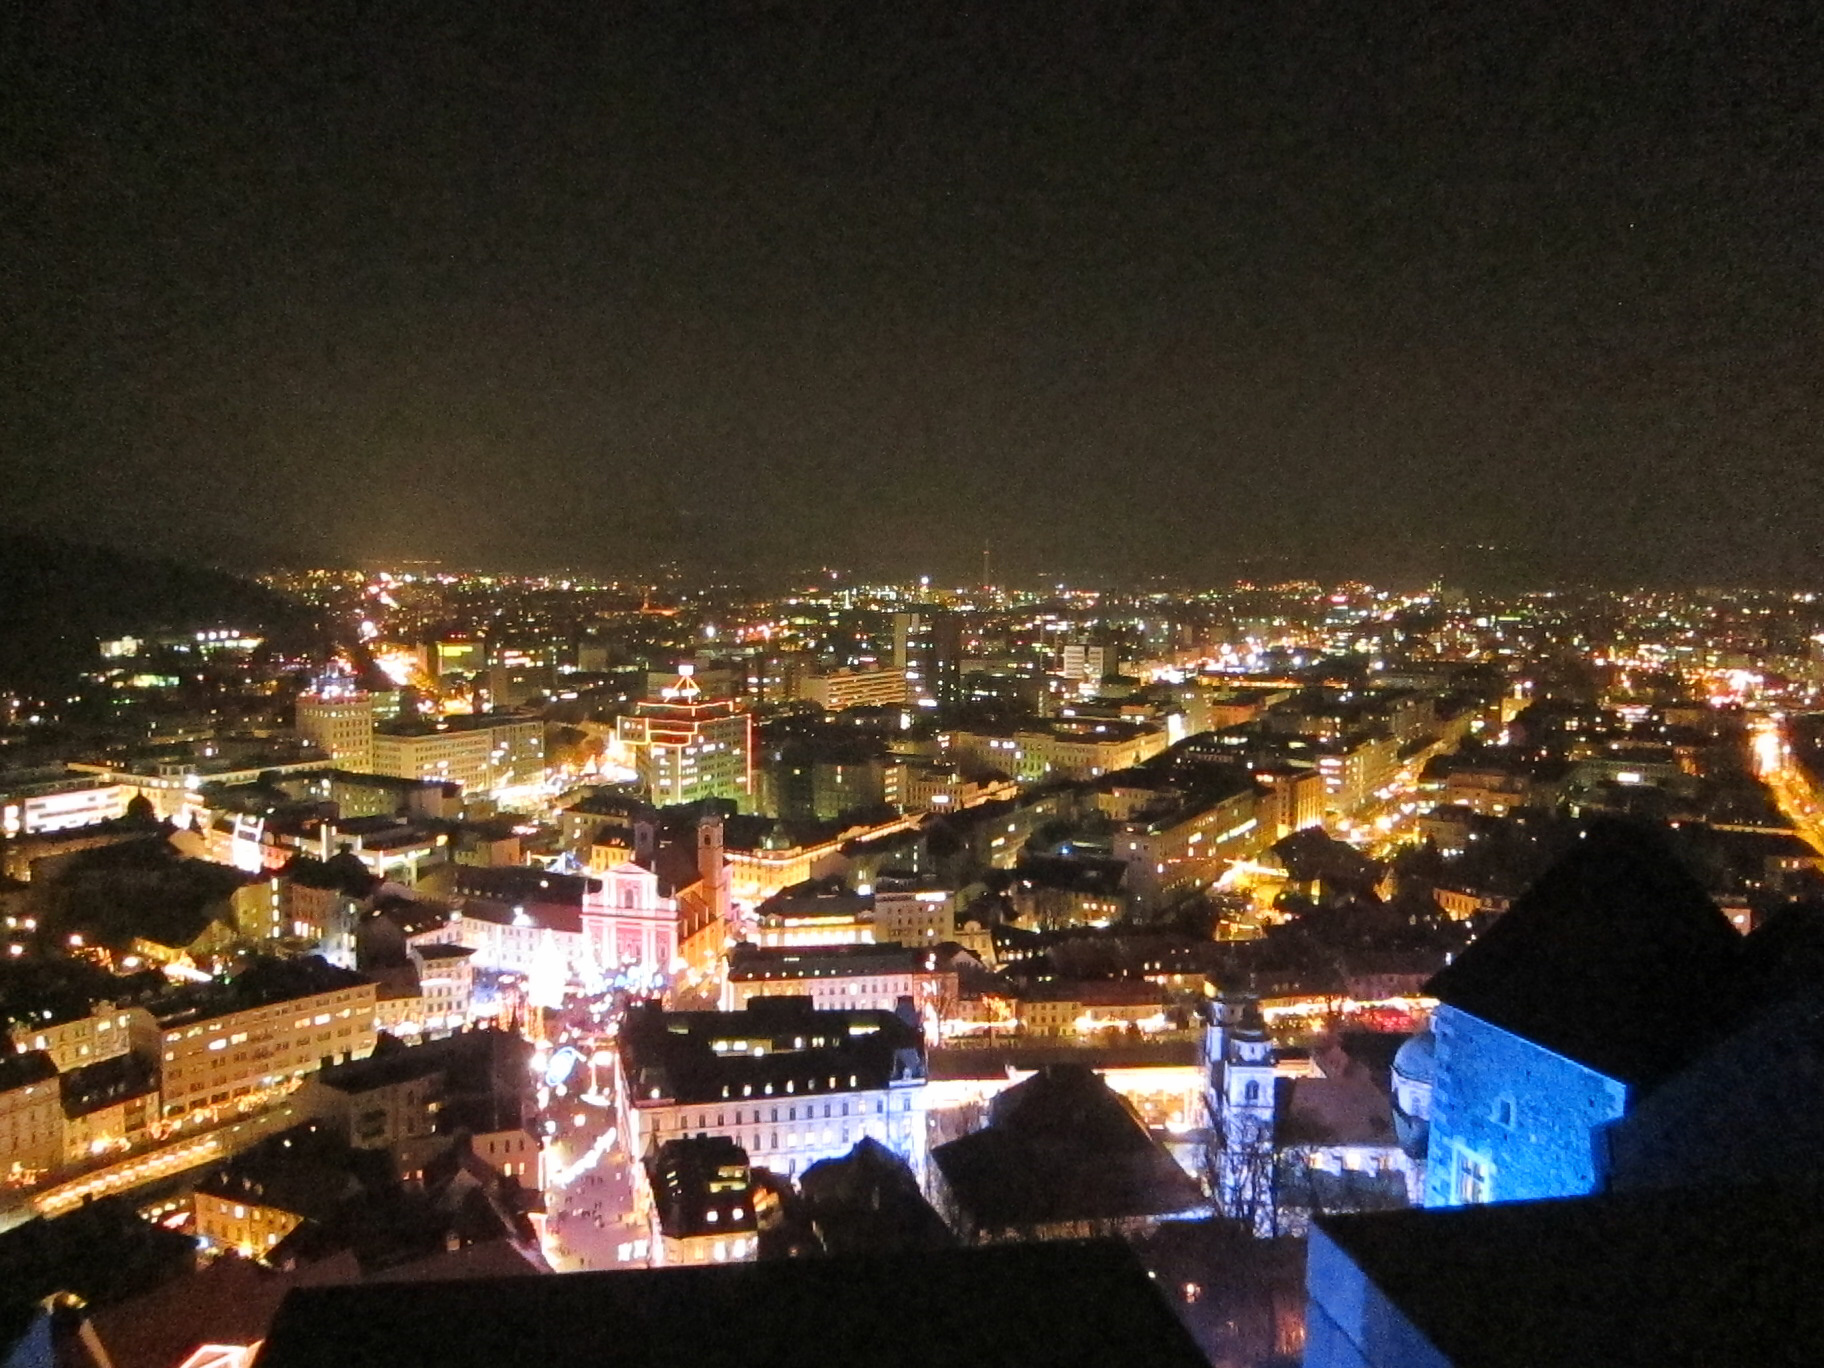 On top of Castle Ljubljana (Excuse the quality)